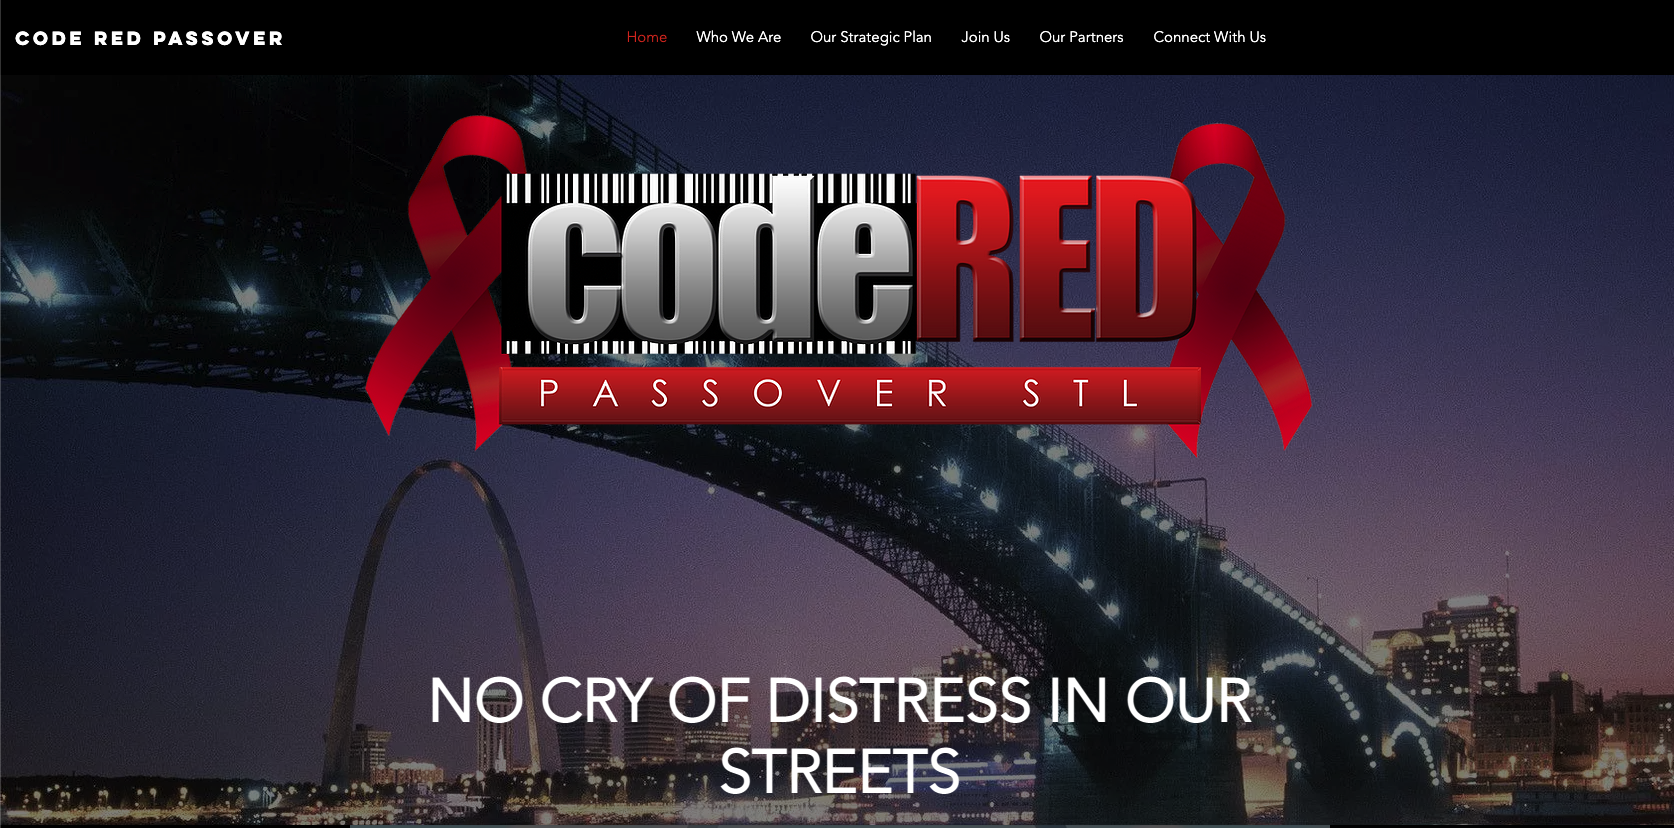 Code Red Passover